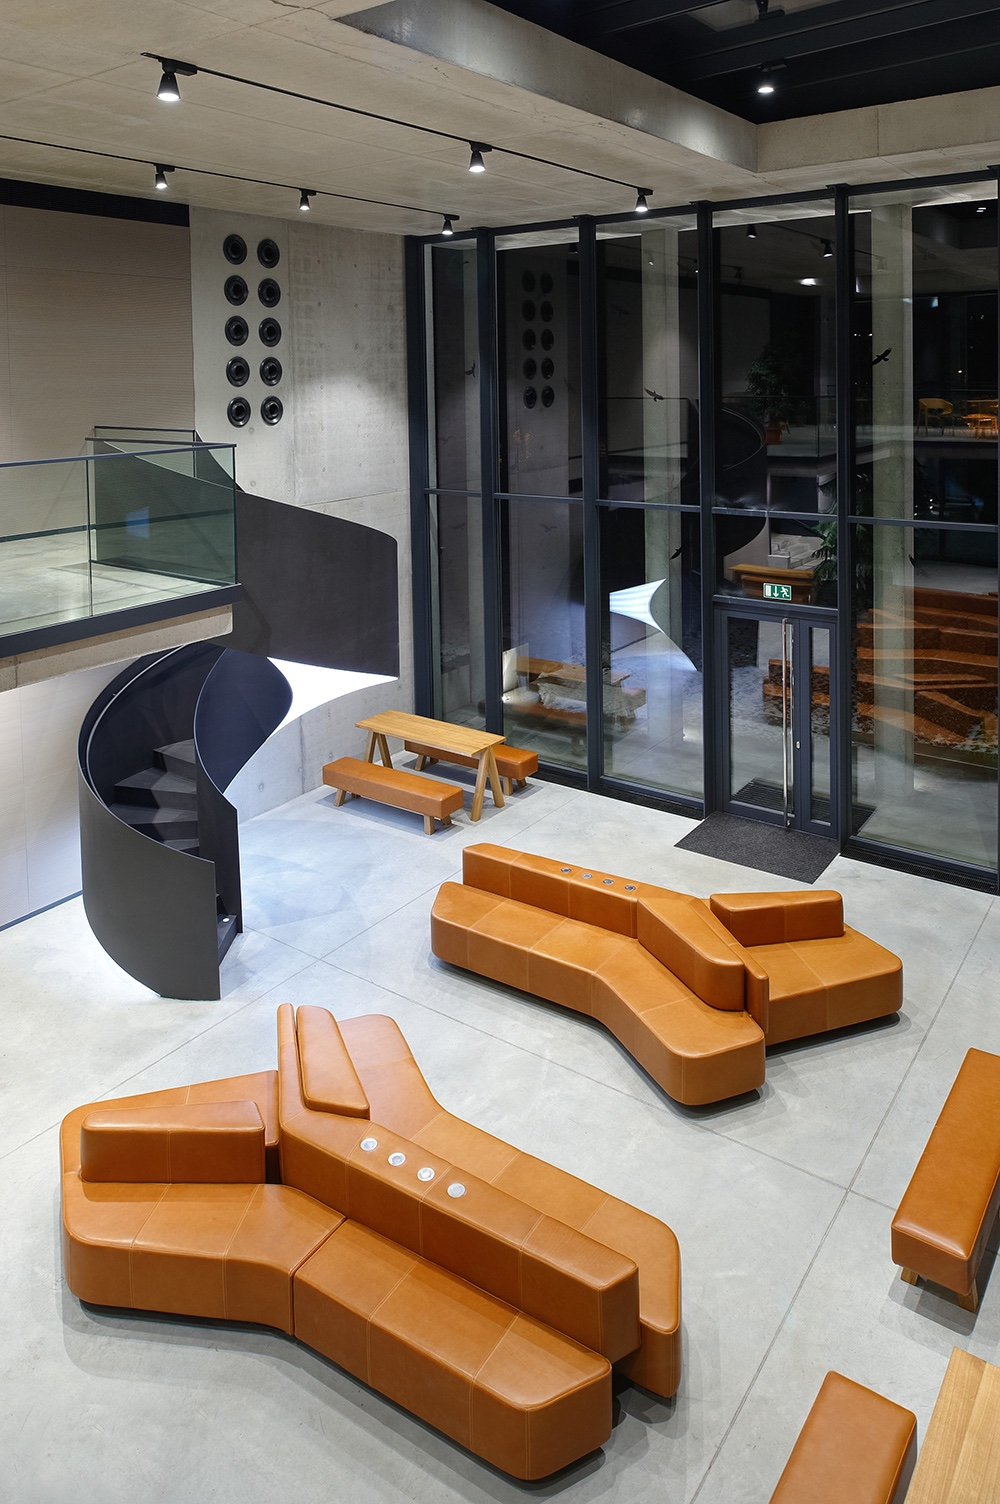 Economics Faculty of Czech University of Life Science in Prague by Luka Križek / IO Studio. Leather: Canyon in cognac.